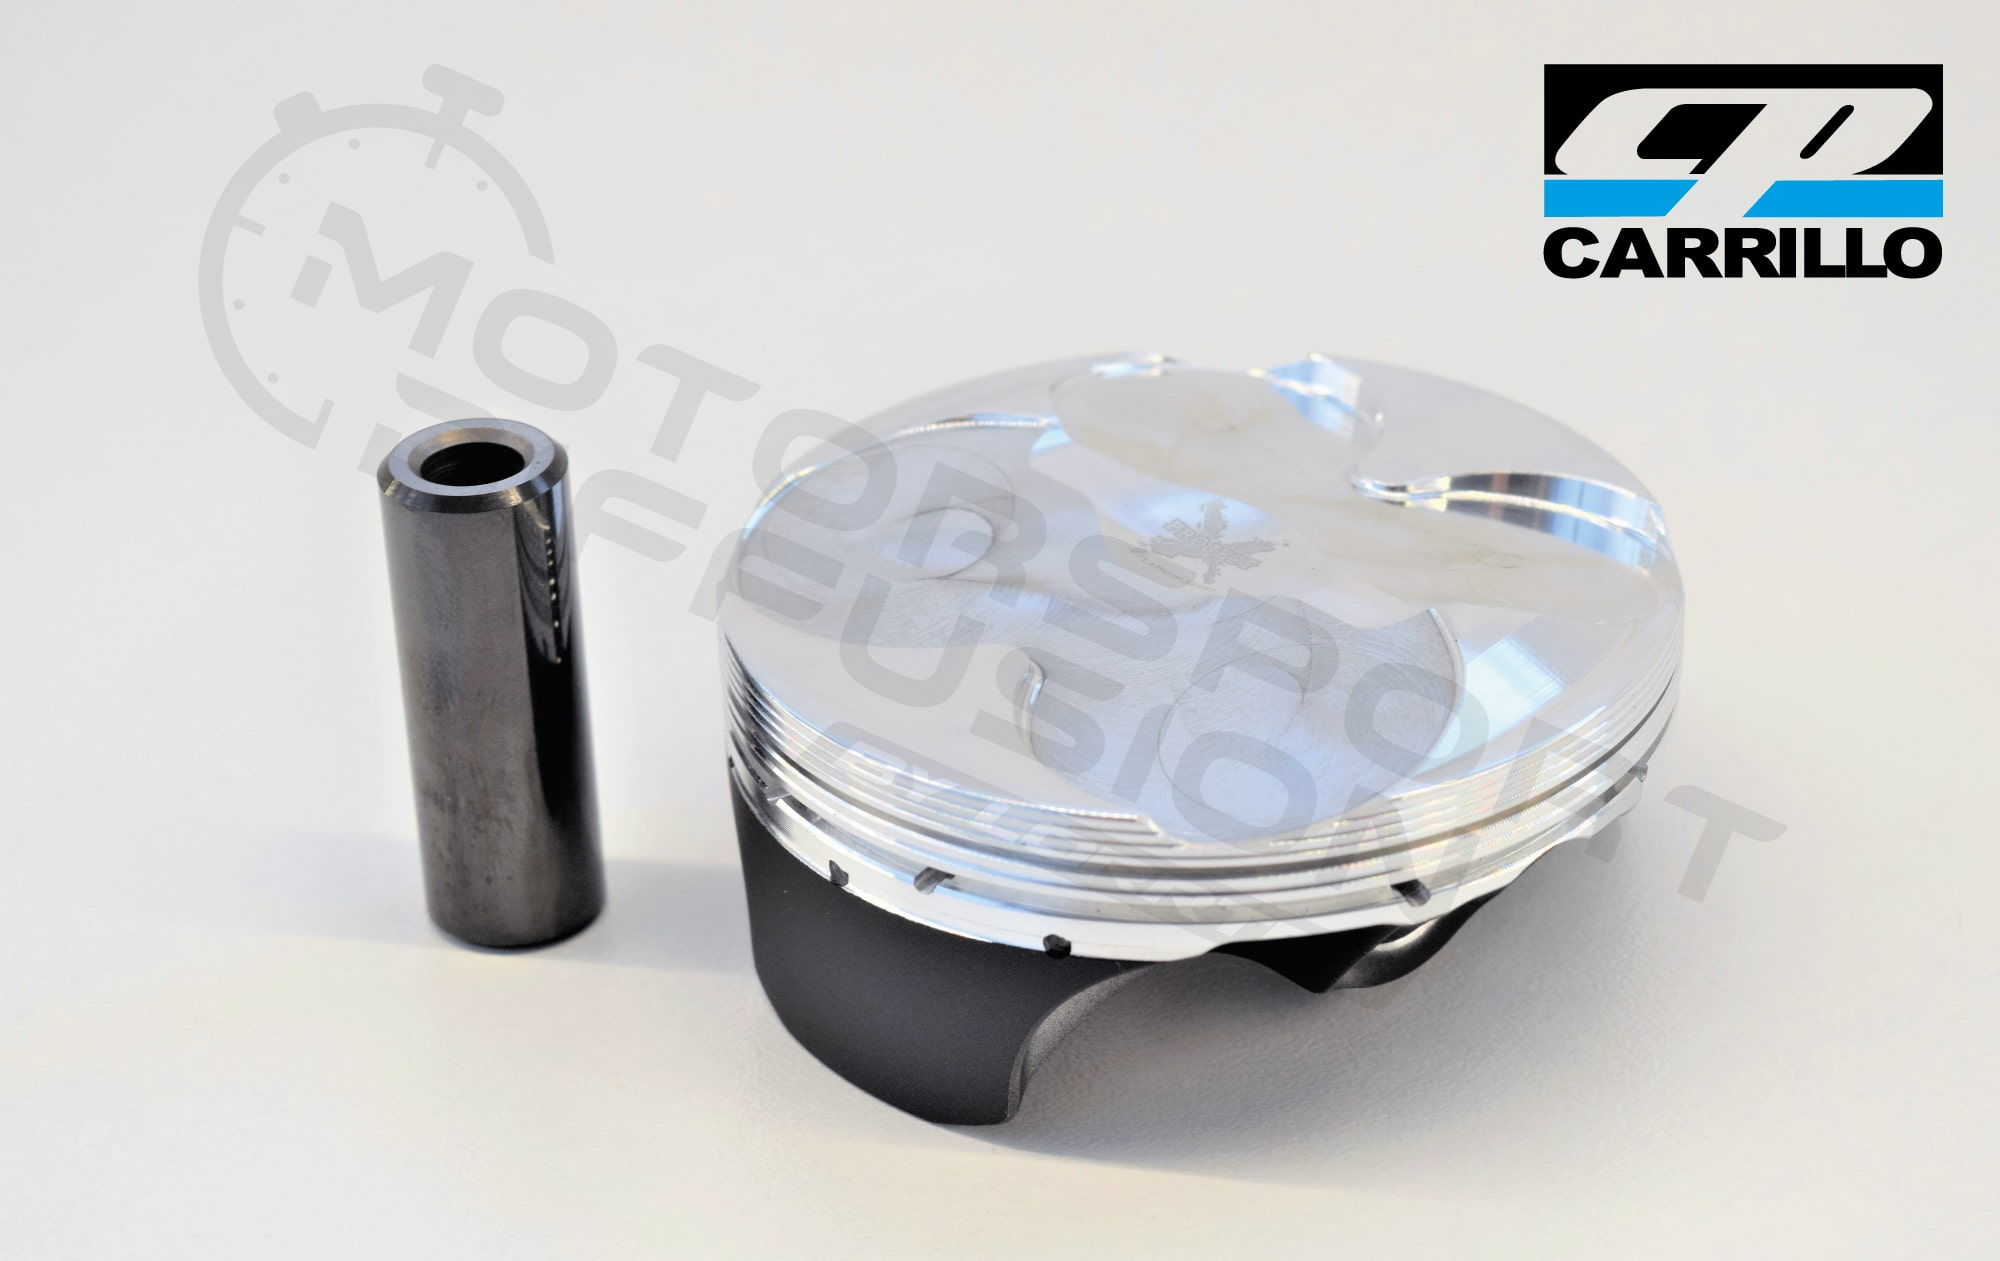 piston forg cp carrillo honda 450 crf 2002 2008 vente pi ces moteurs professionnel particulier. Black Bedroom Furniture Sets. Home Design Ideas